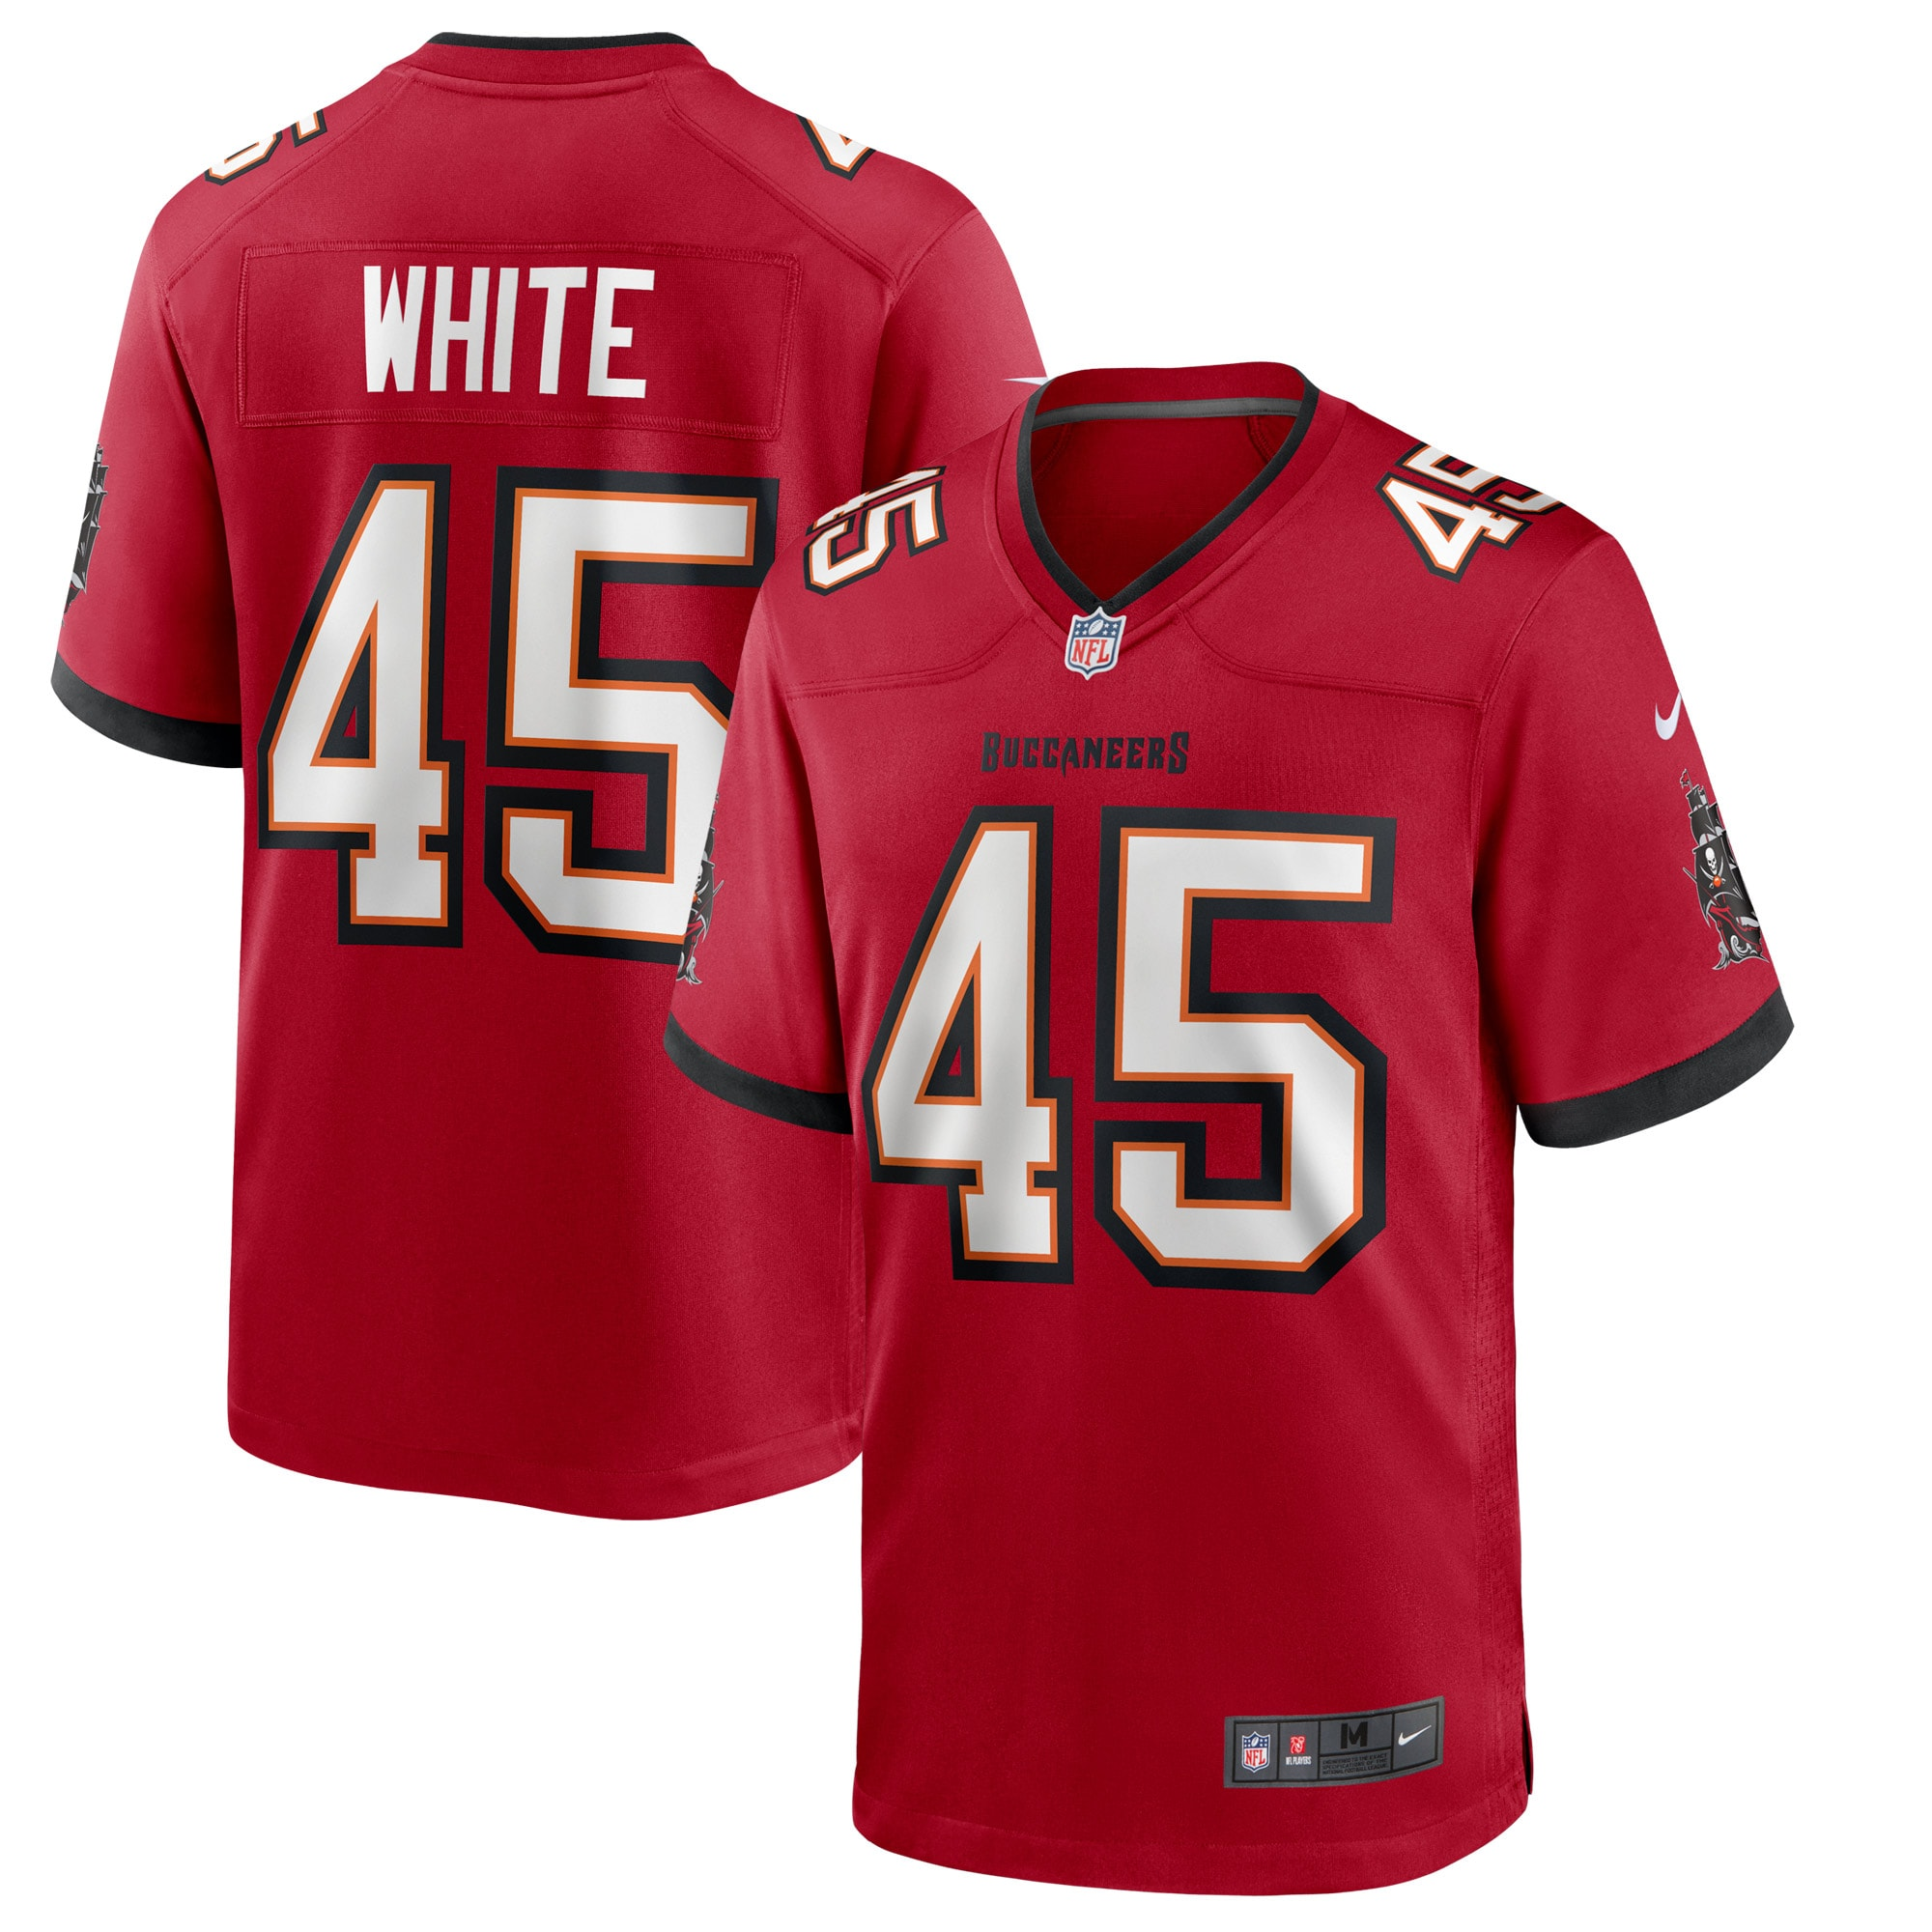 Devin White Tampa Bay Buccaneers Nike Game Player Jersey - Red